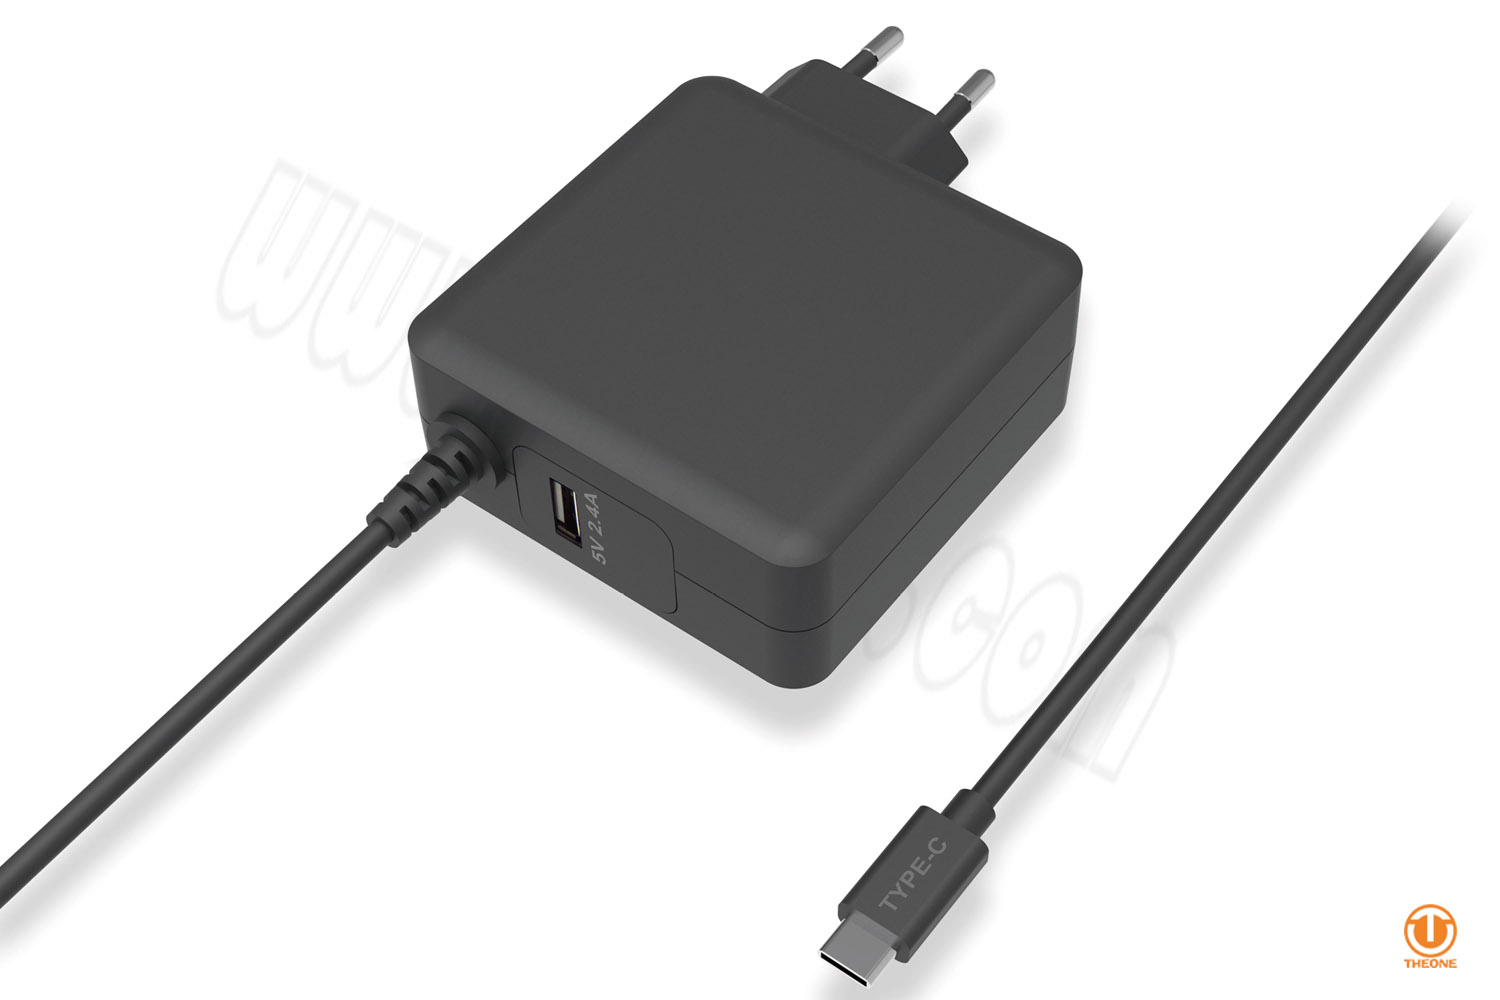 usb-c power delivery